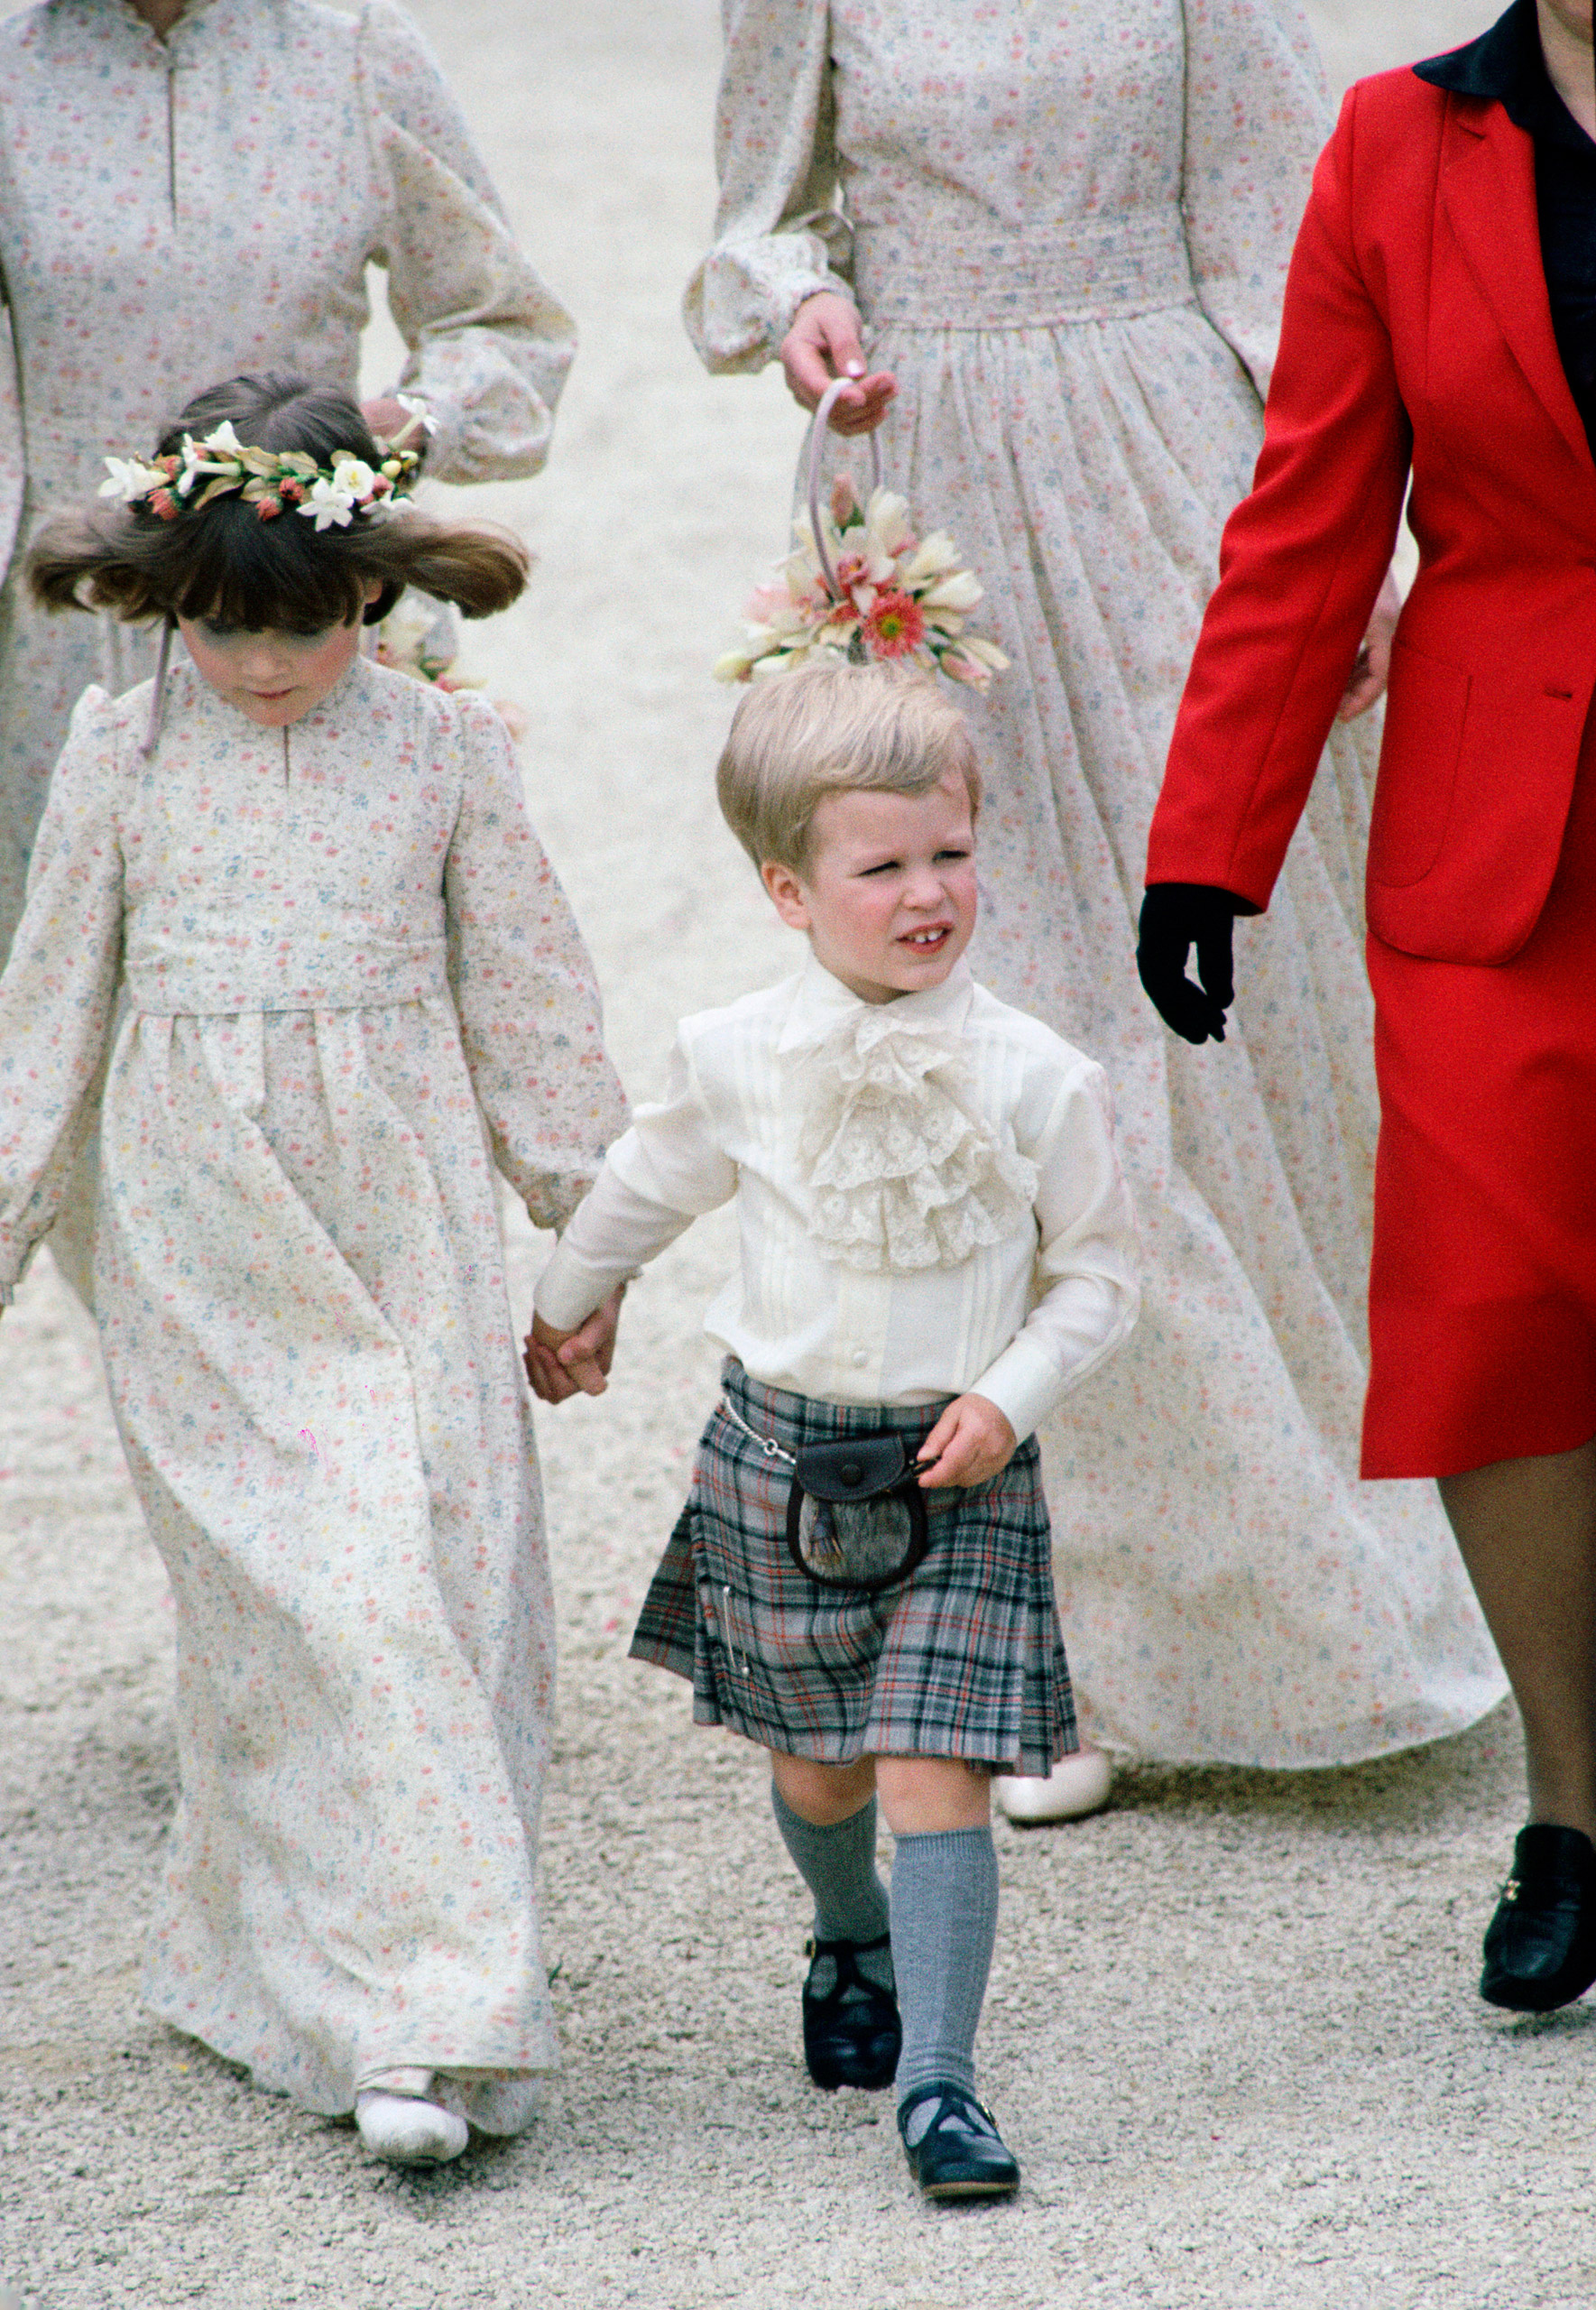 Peter Phillips dressed as a pageboy for his Aunt Sarah Phillips' wedding.